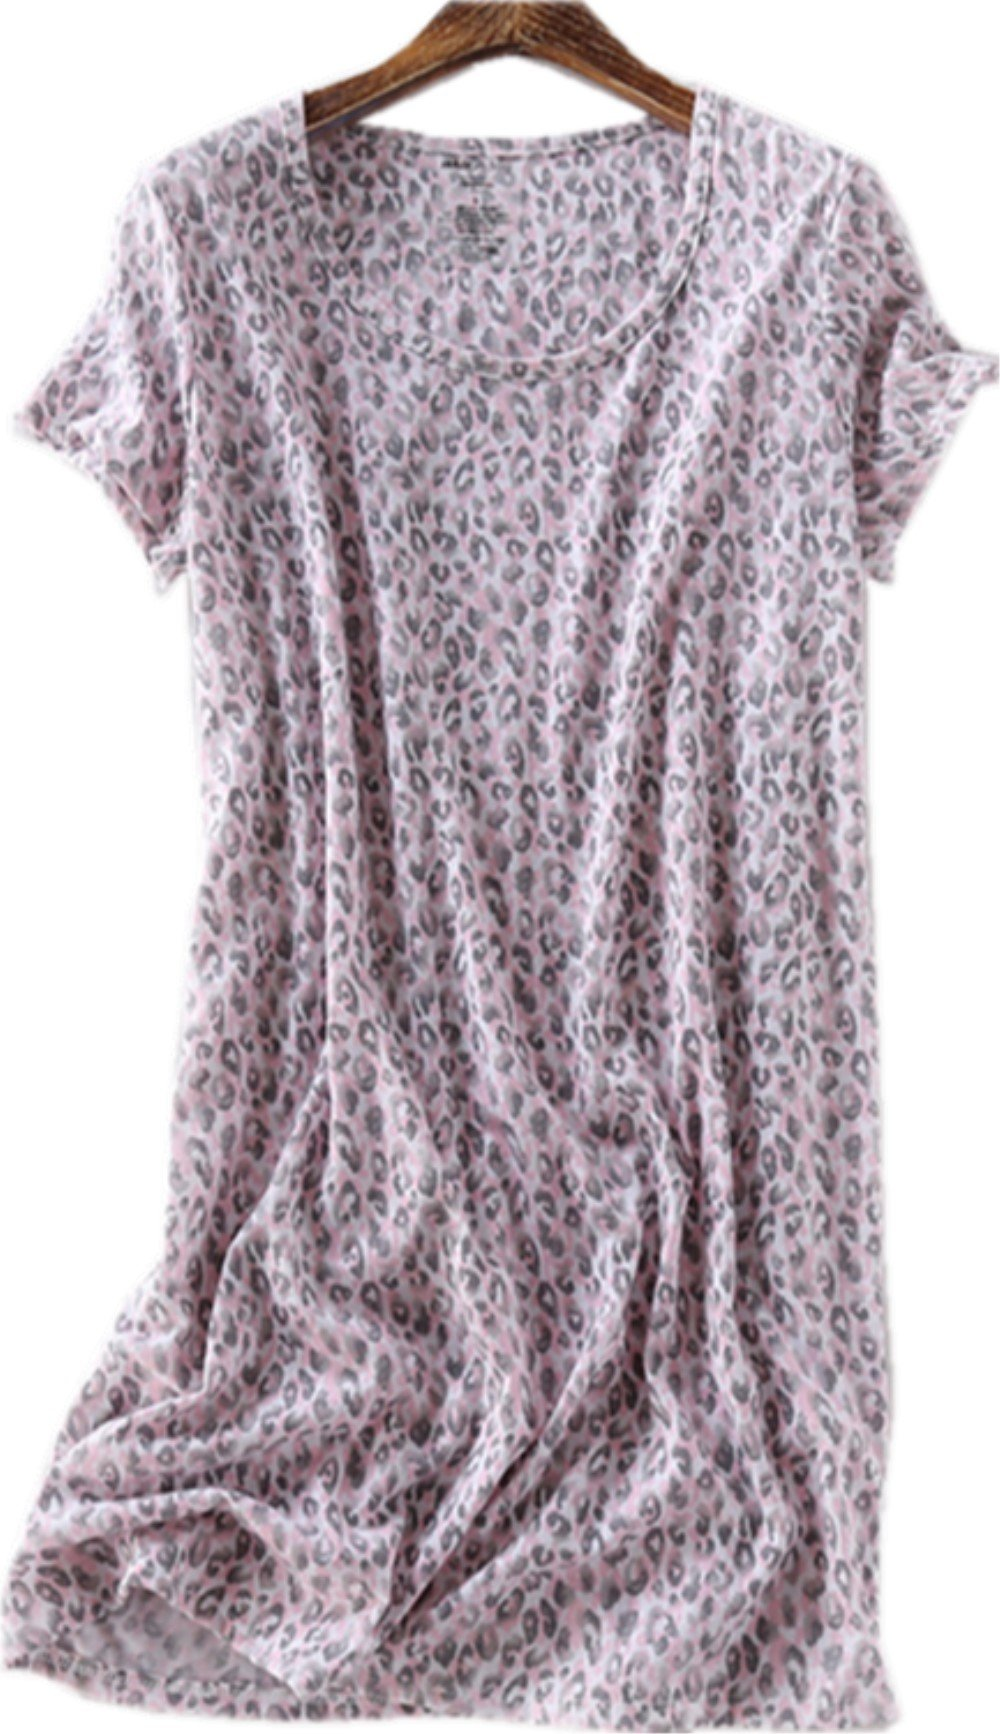 Amoy madrola Women's Cotton Blend Floral Nightgown Casual Nights XTSY108-Leopard-L by Amoy-Baby